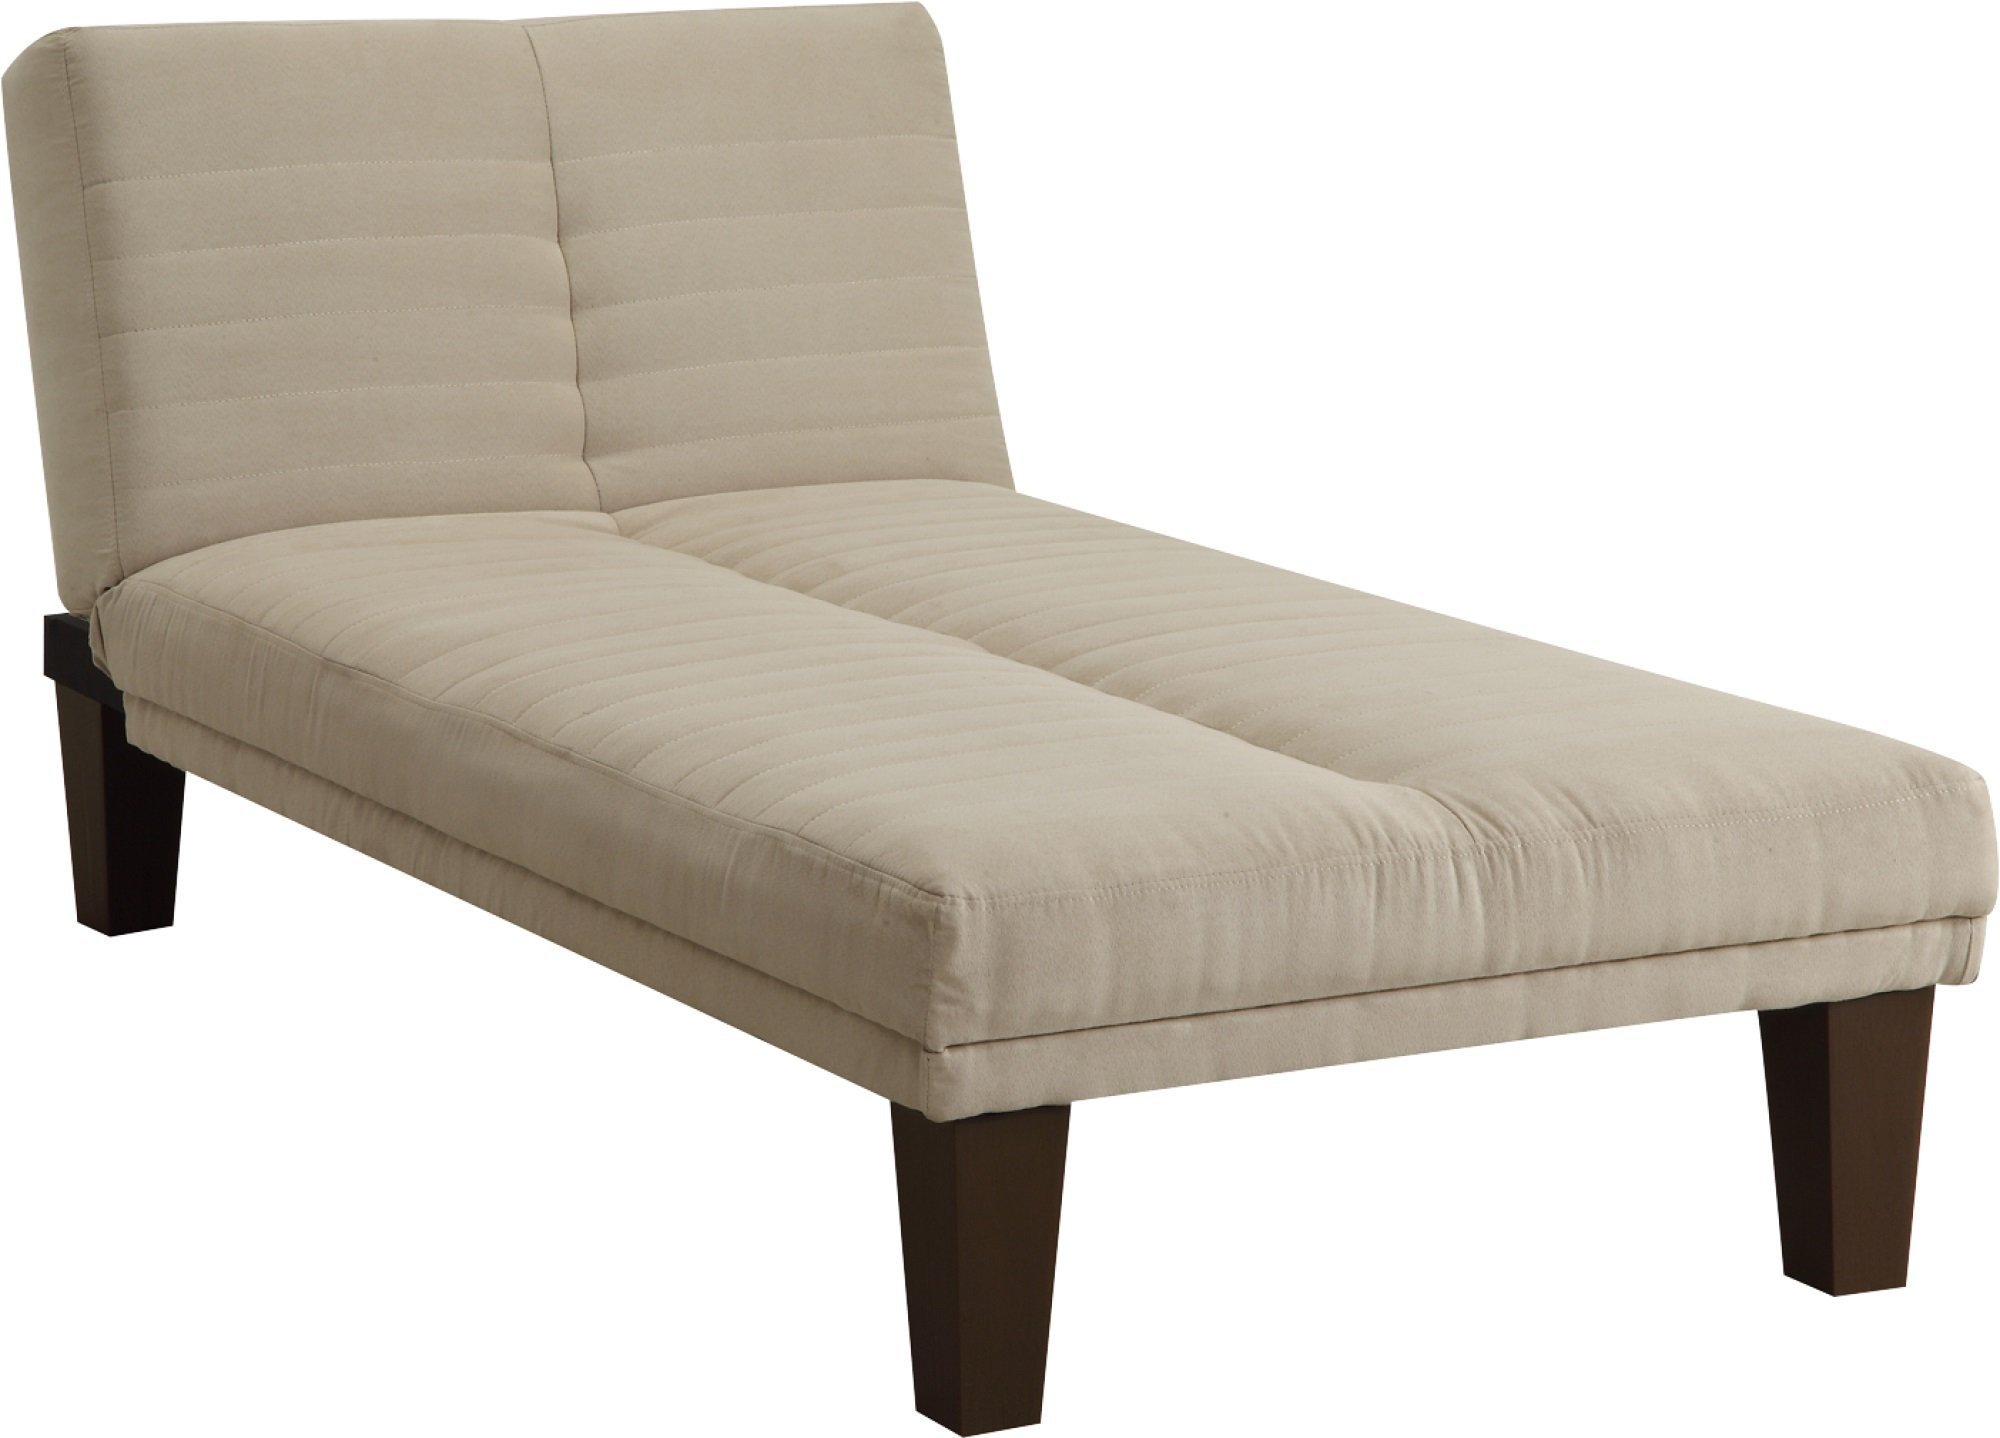 DHP Dillan Chaise Lounger with Microfiber Upholstery and Wood Legs - Tan